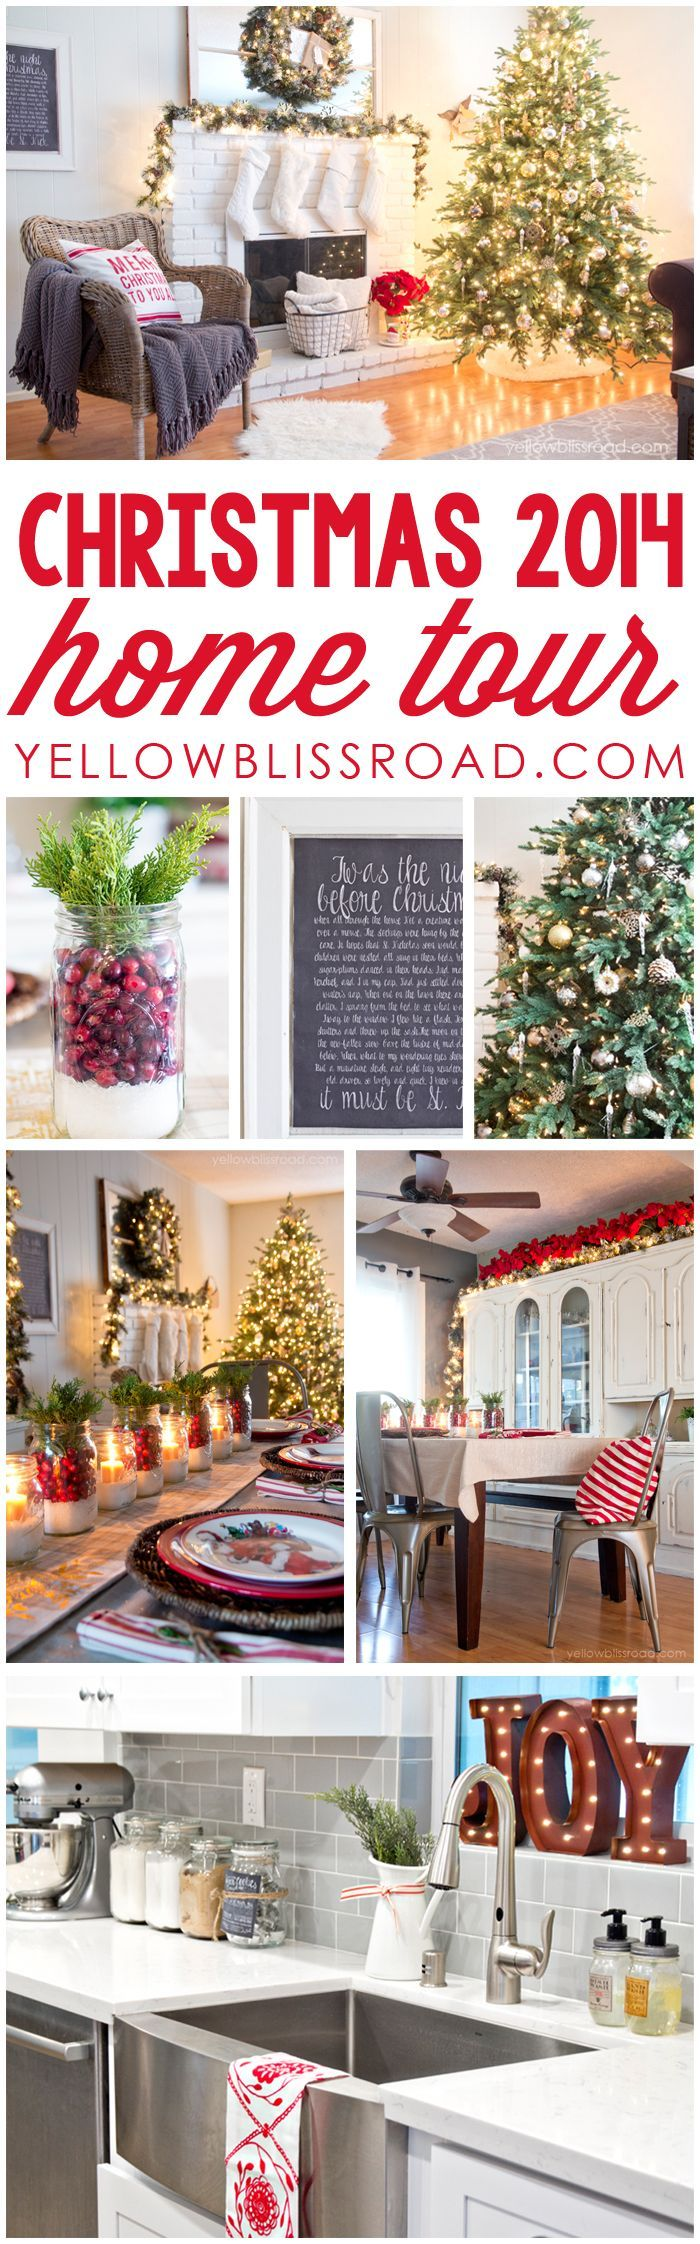 Christmas Home Tour 2014 ~ Tons of Christmas decorating inspiration and ideas!